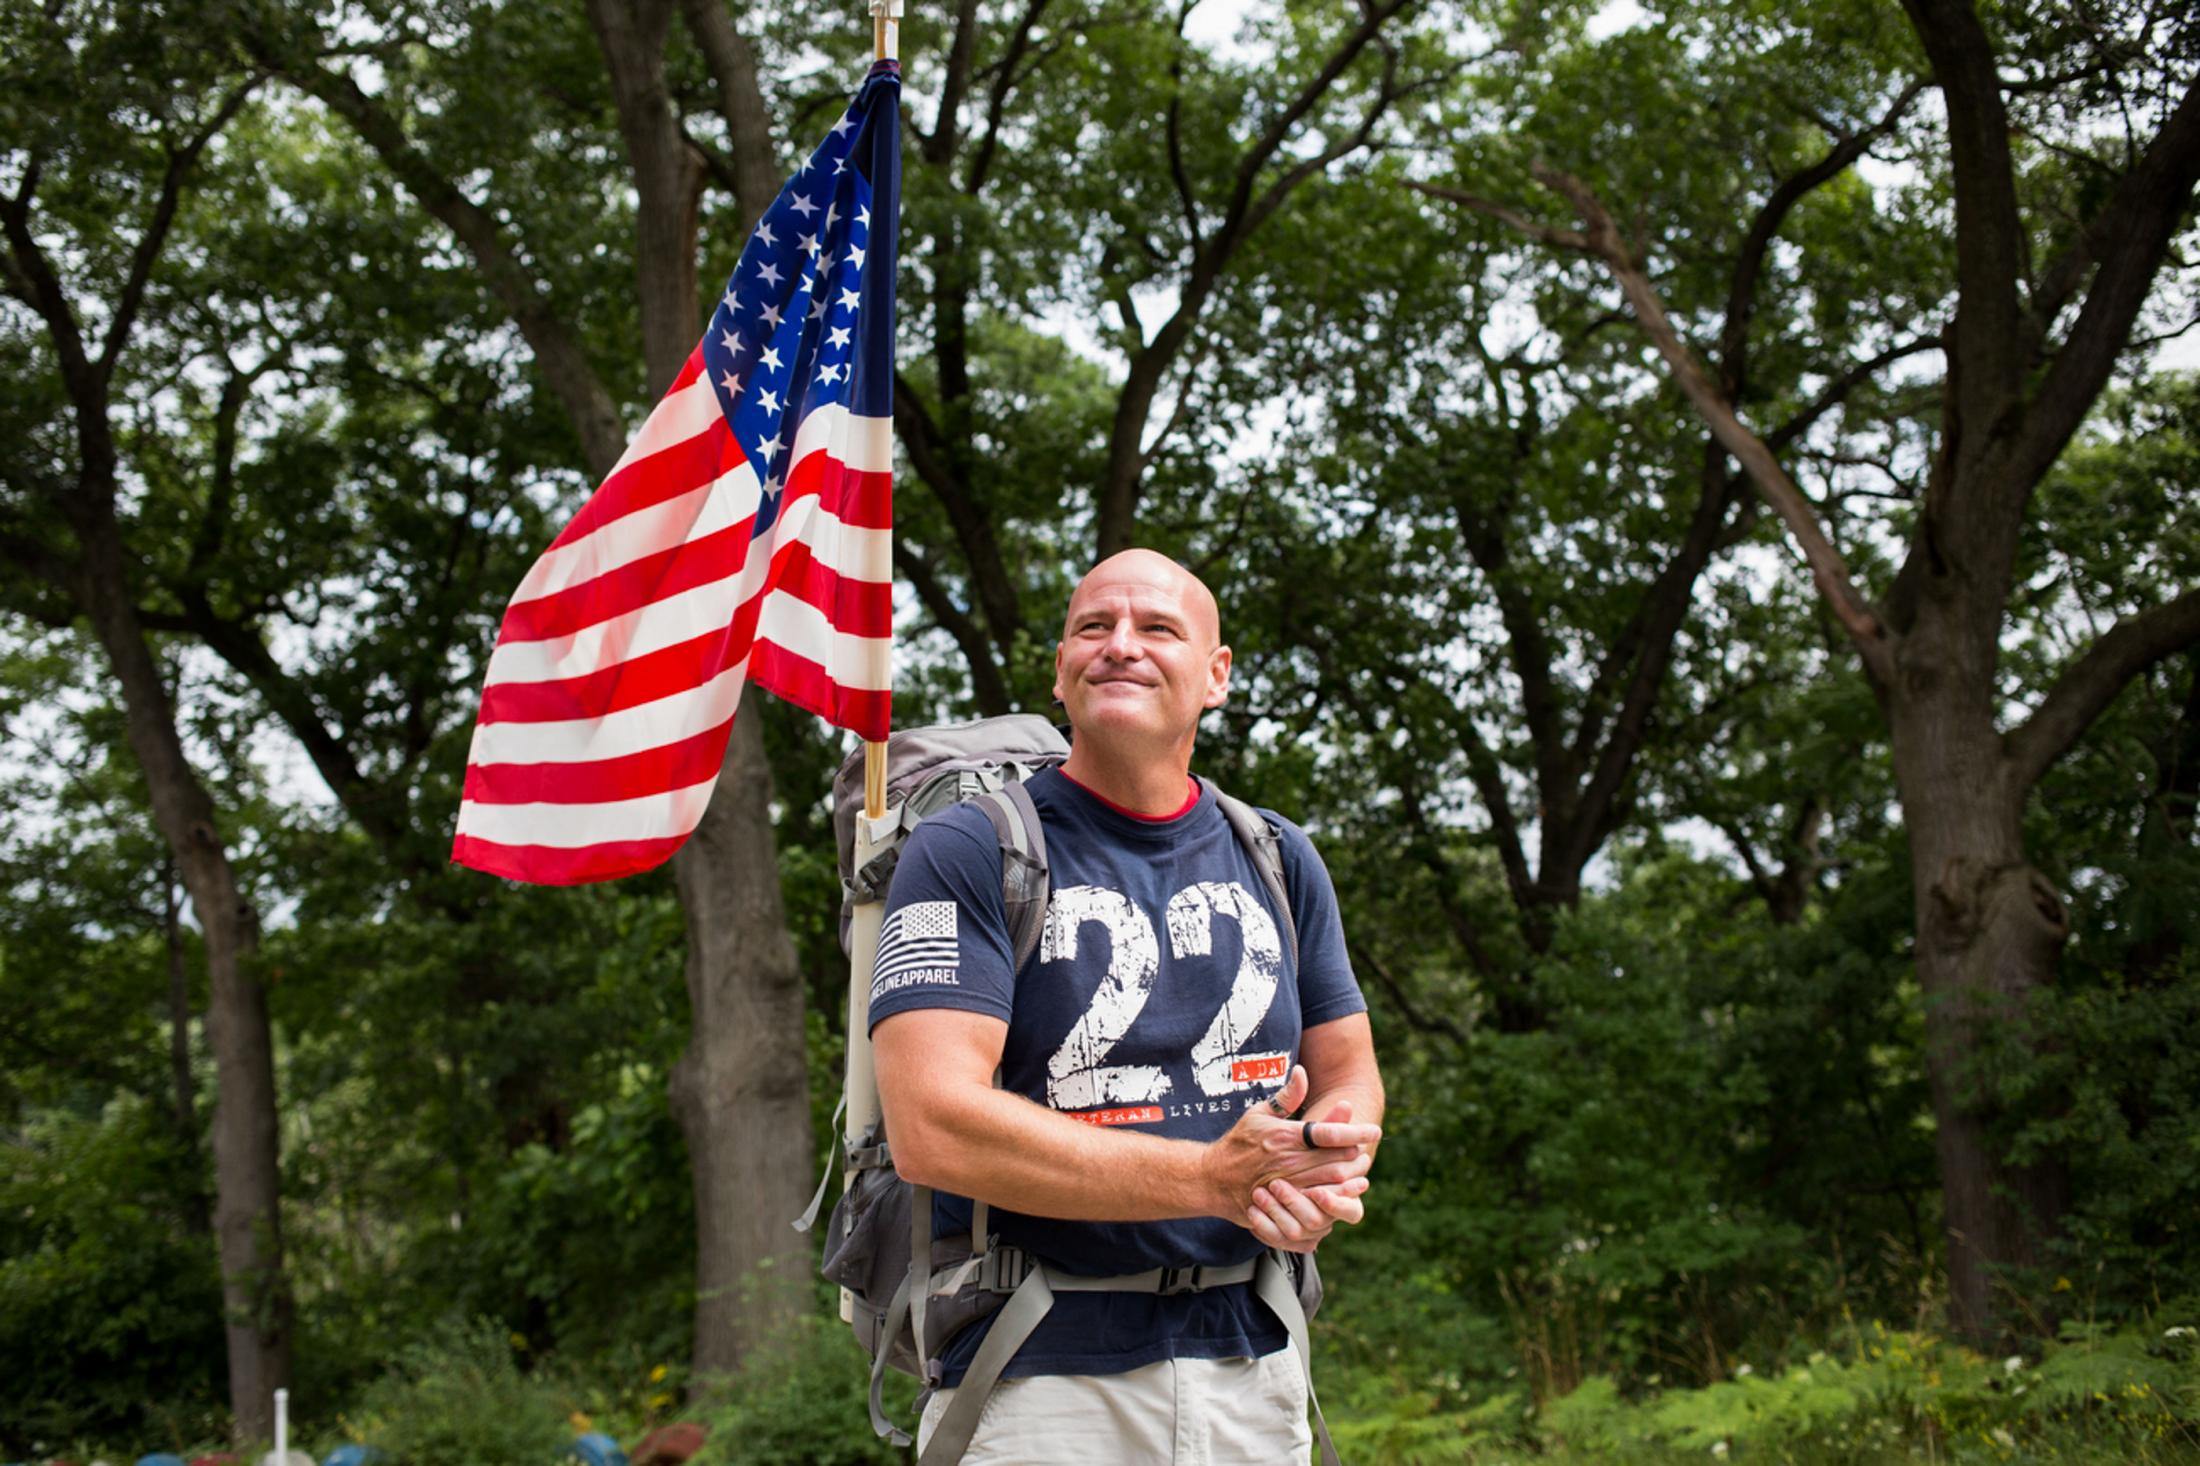 Marty Willis, a U.S. veteran, carries an American flag on his back to raise awareness for veterans who have committed suicide in Muskegon, MI.